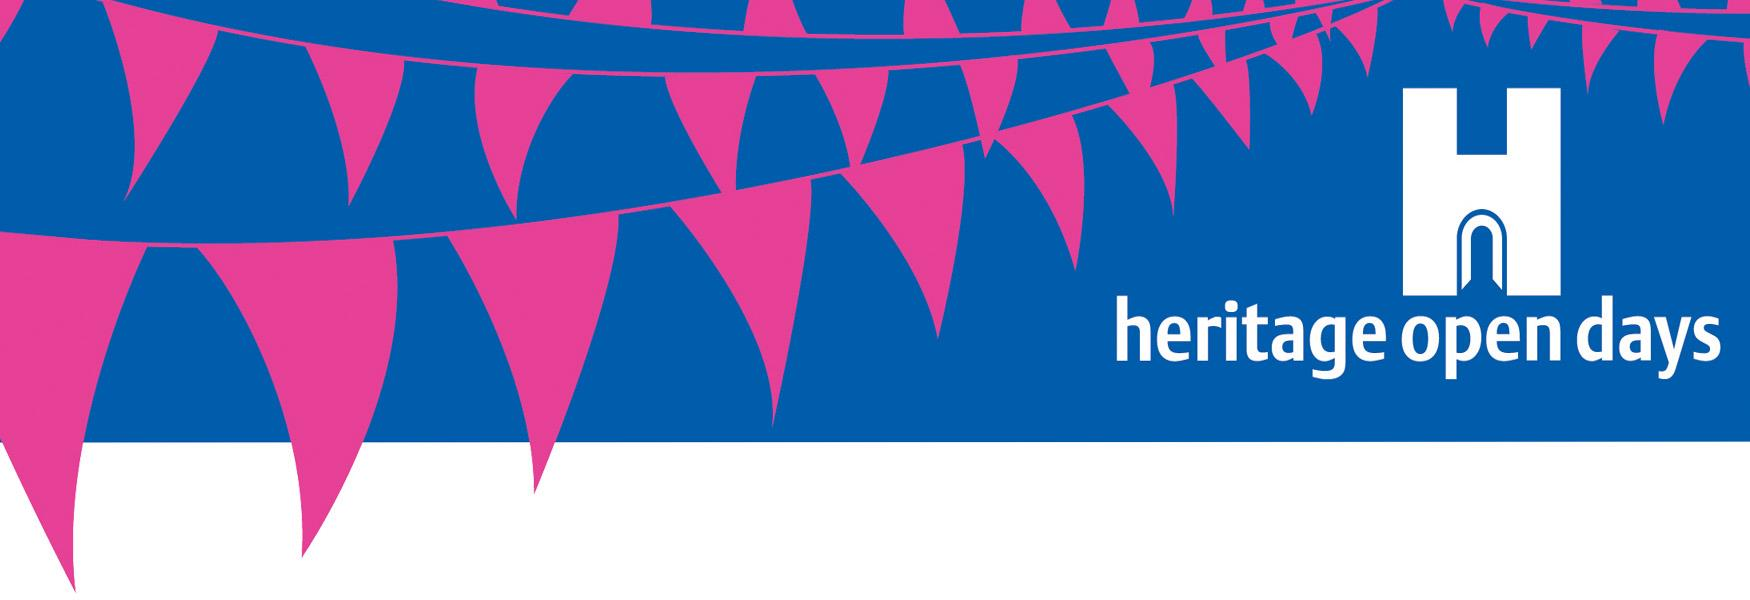 Heritage Open Days Bunting